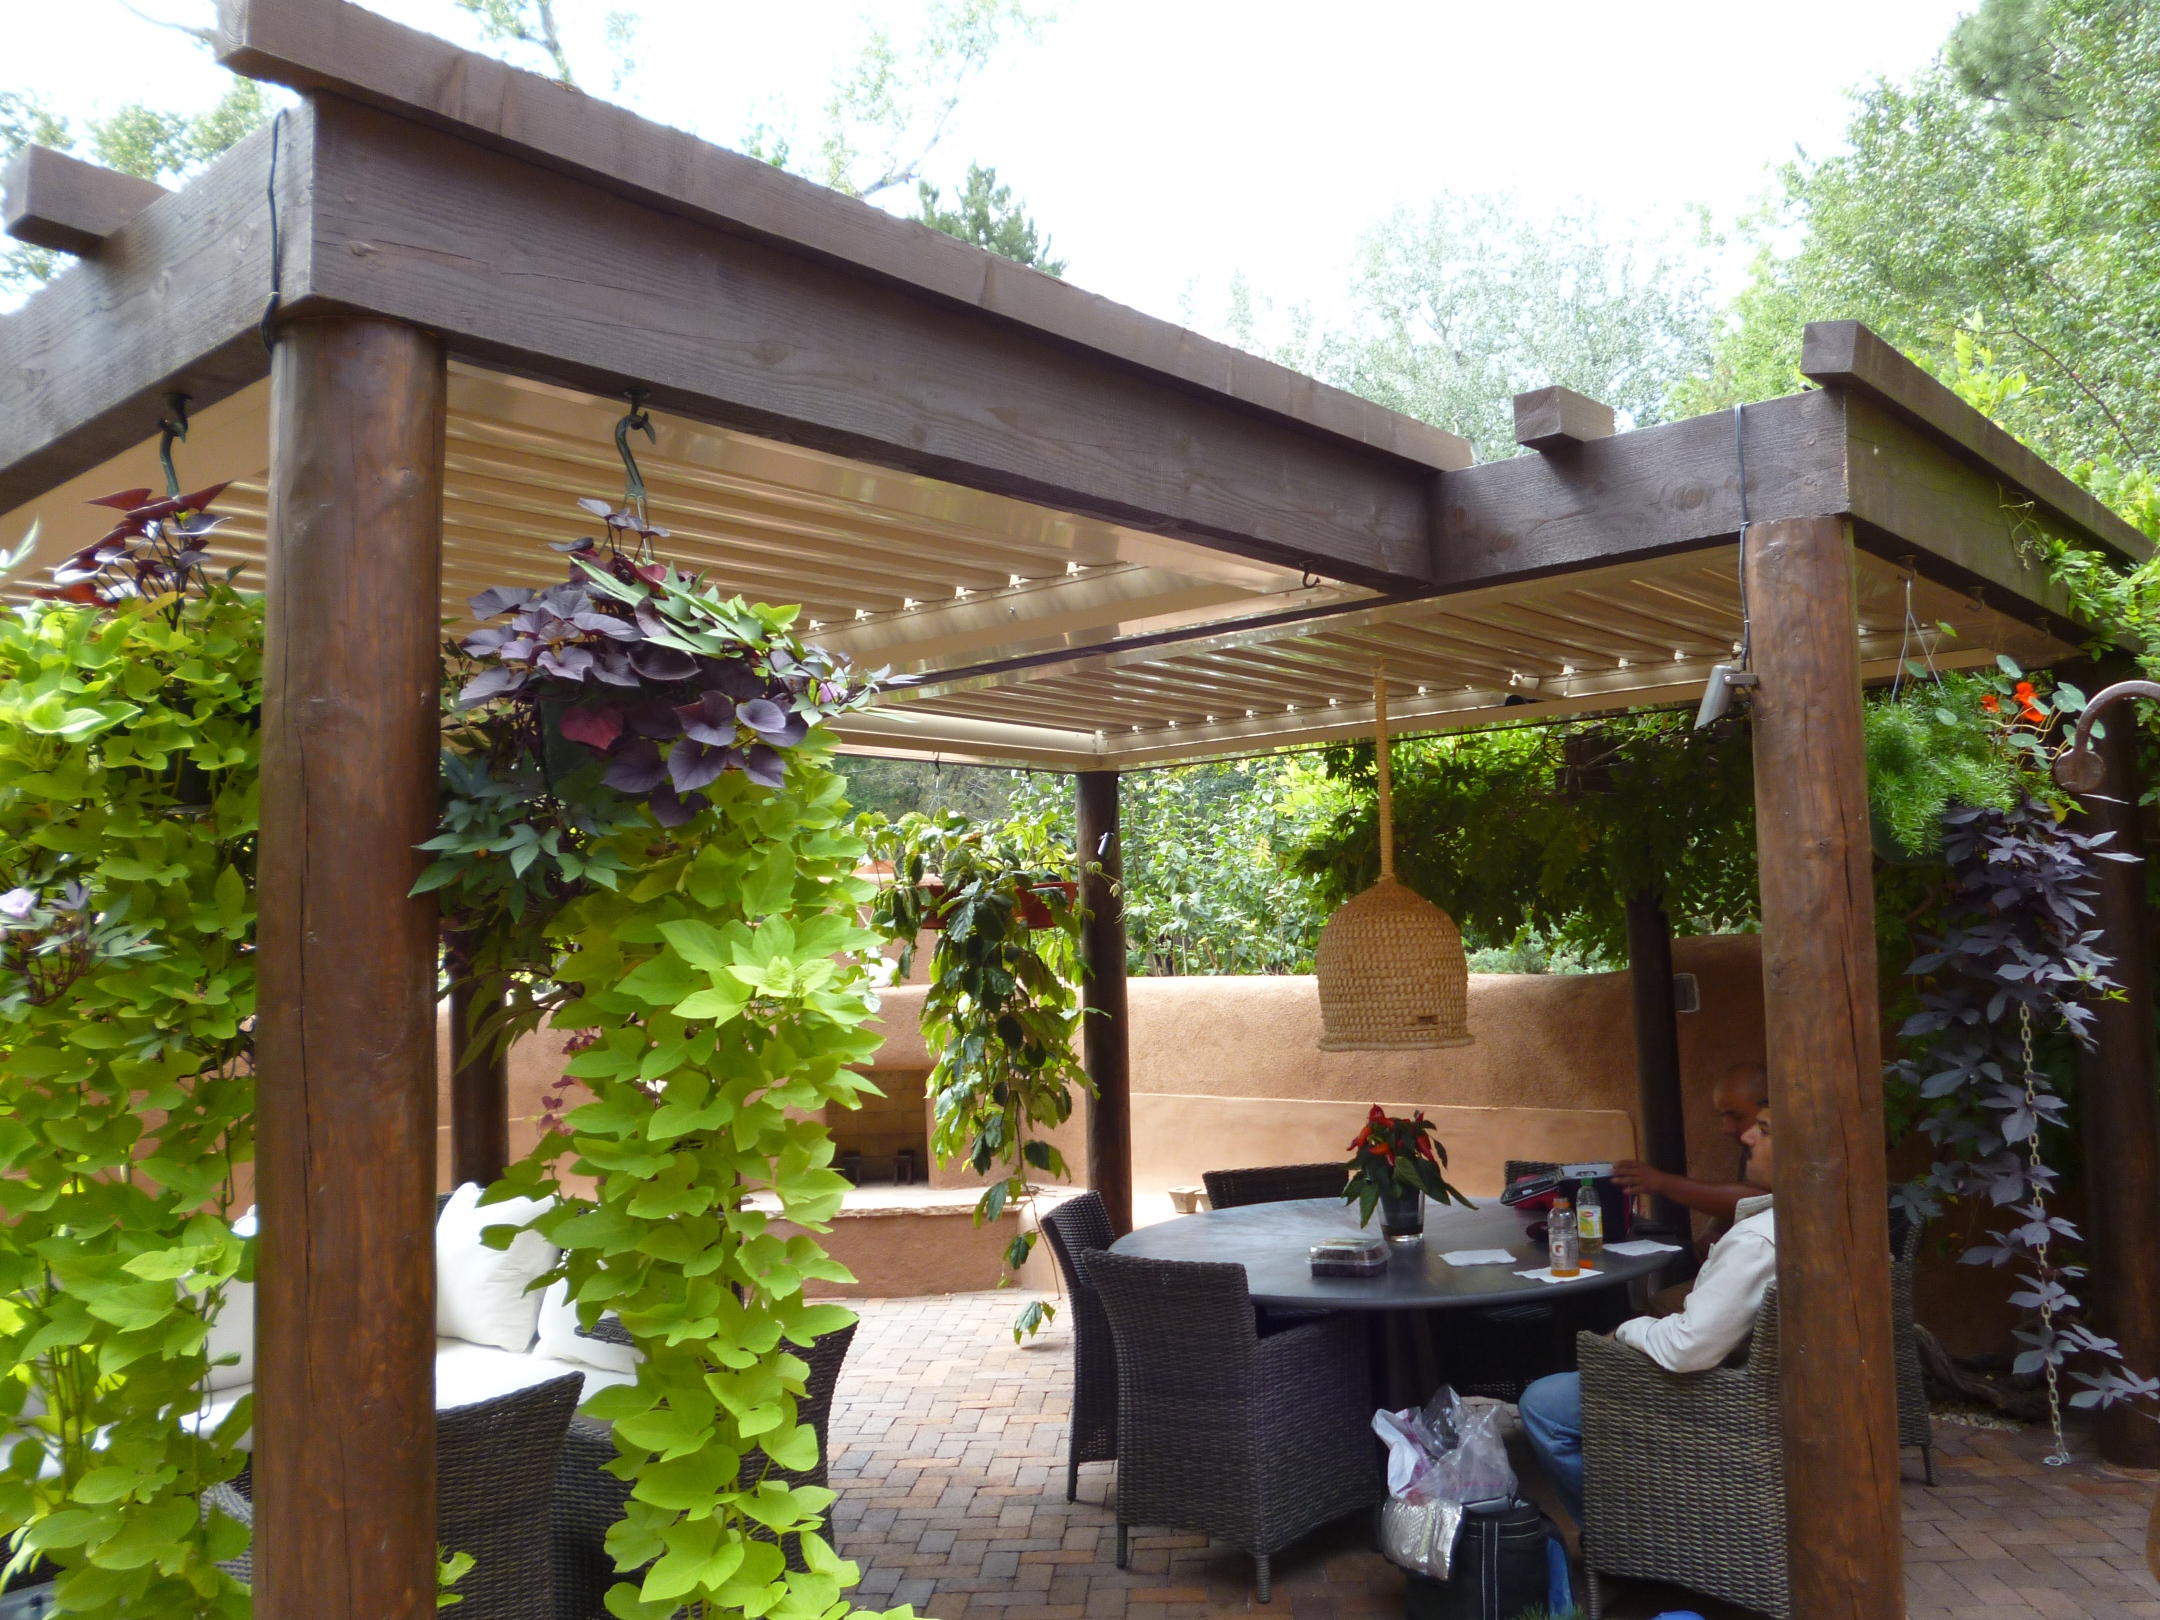 Natural Wooden Patio Covers - HomesFeed on Backyard Patio Cover Ideas  id=42375